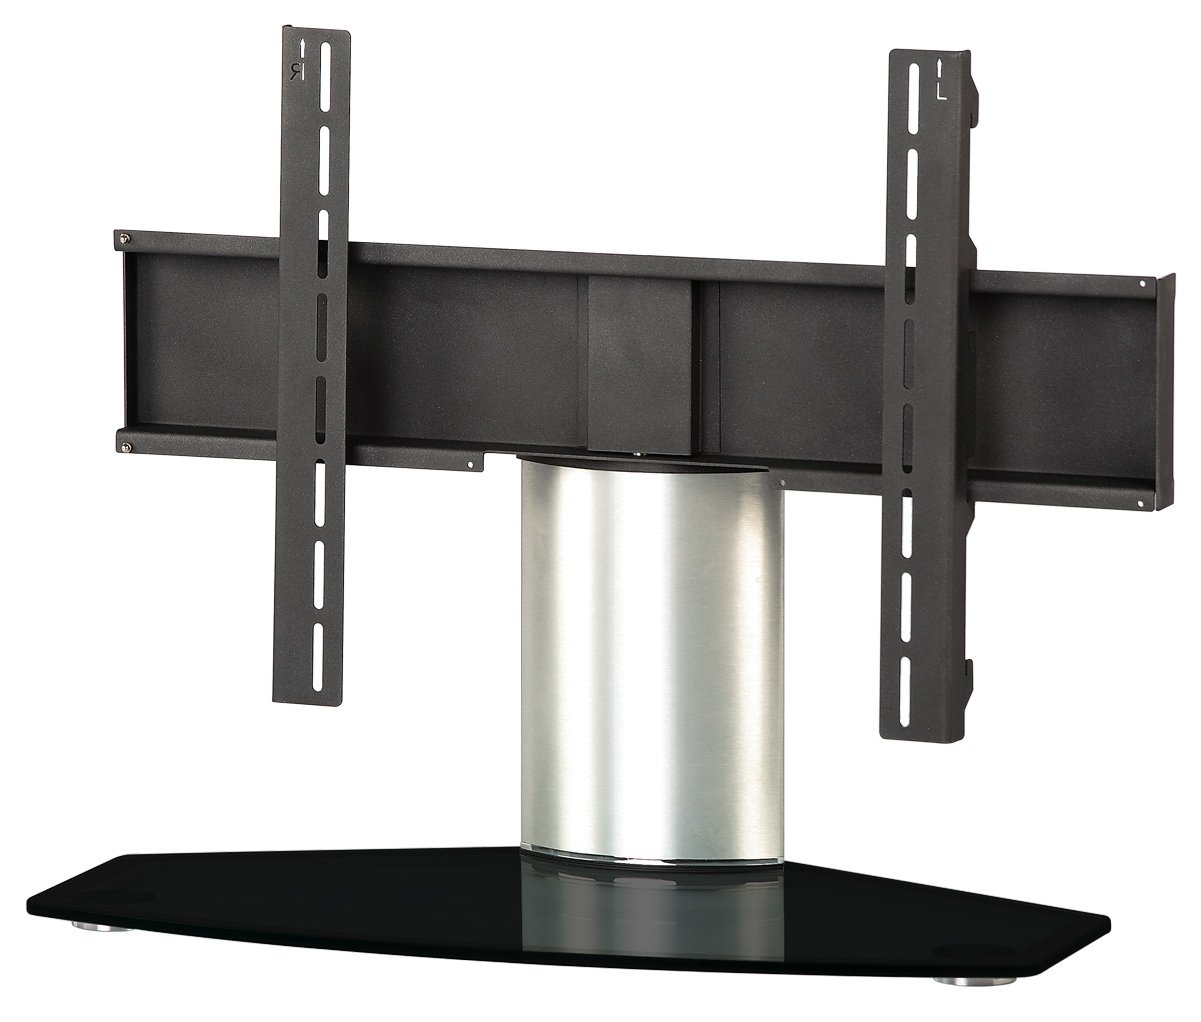 Wonderful B GRADE/Box Slightly Damaged Sonorous Black And Silver Universal Table Top  Stand Main Image